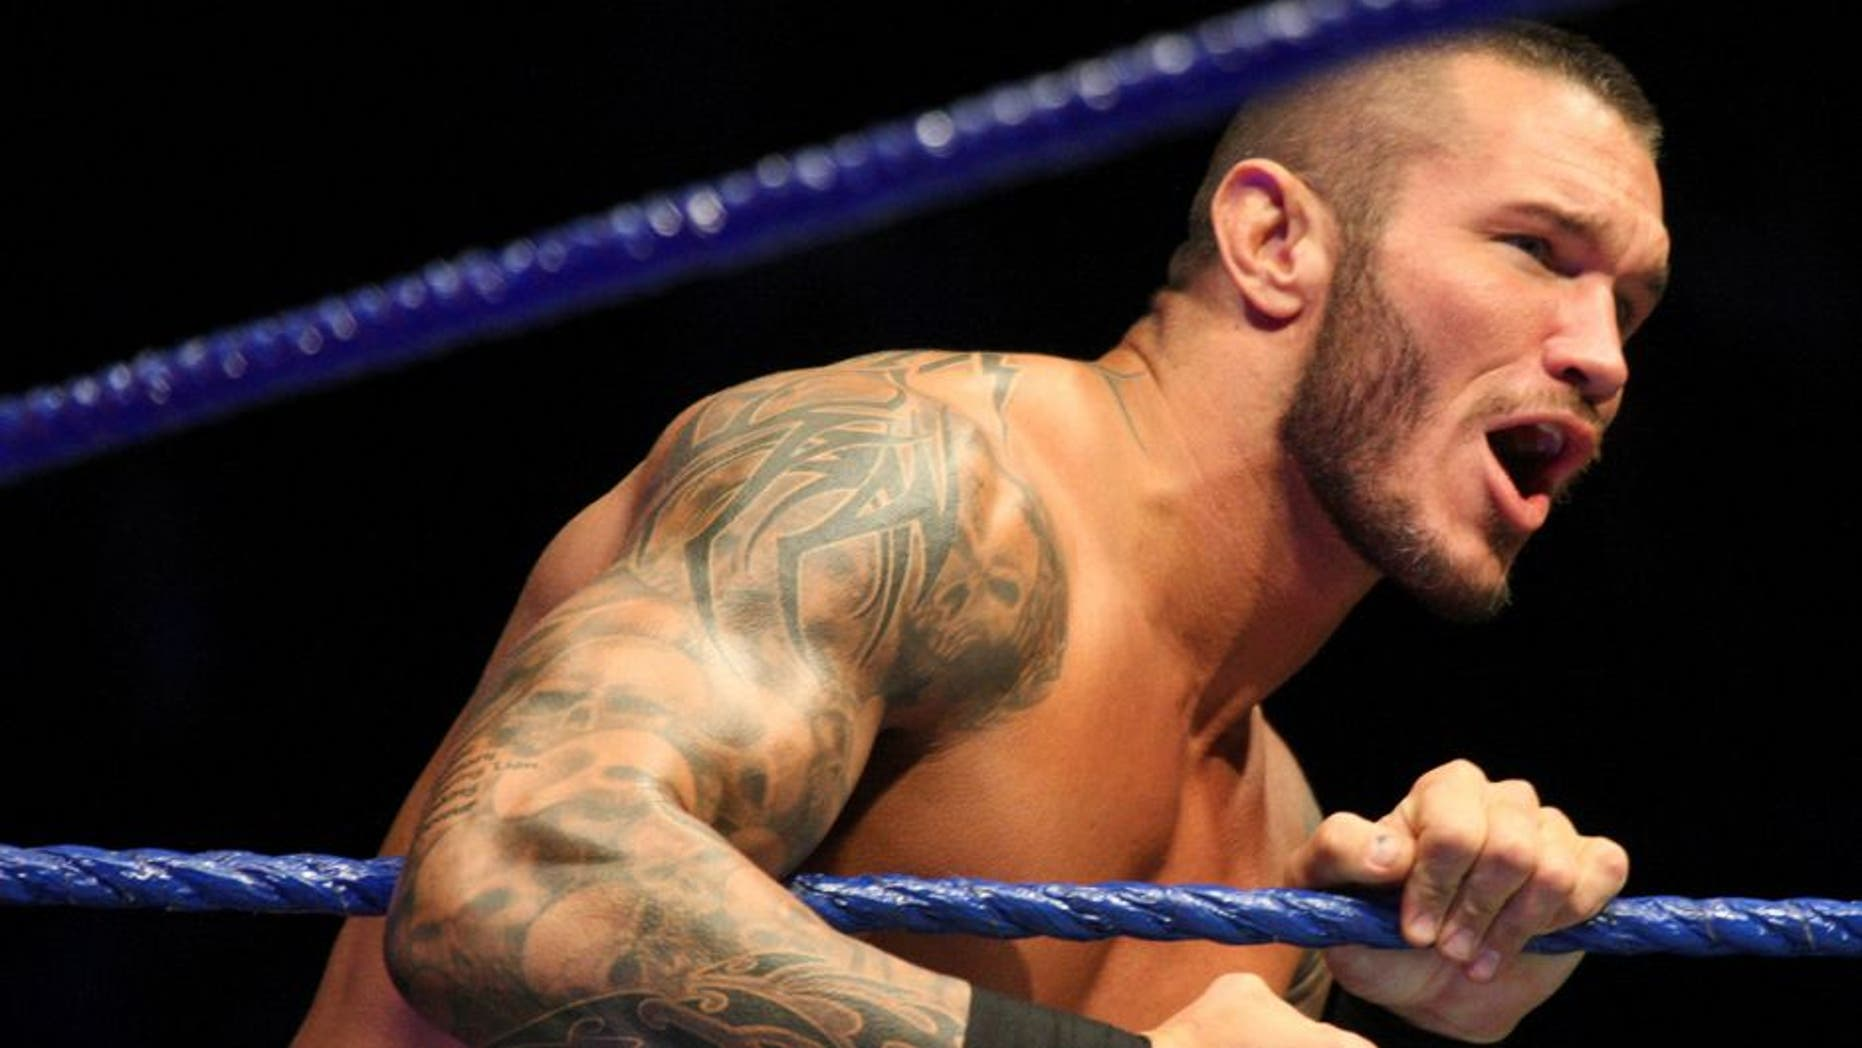 Randy Orton lost to AJ Styles in the affected match.